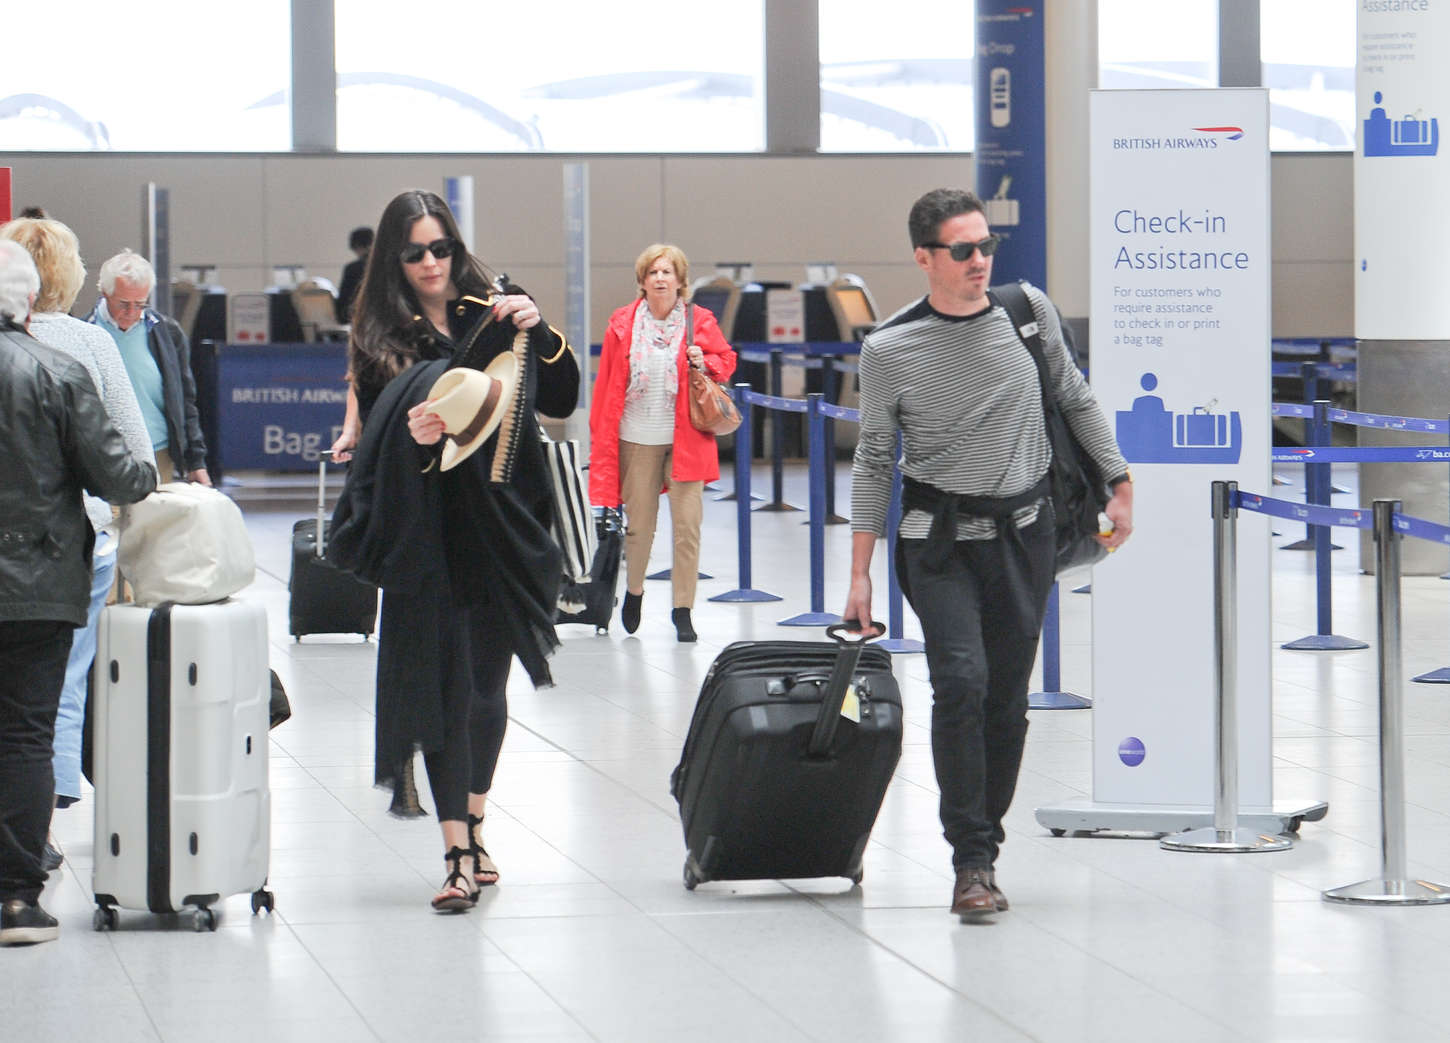 Liv Tyler at Gatwick Airport in Crawley